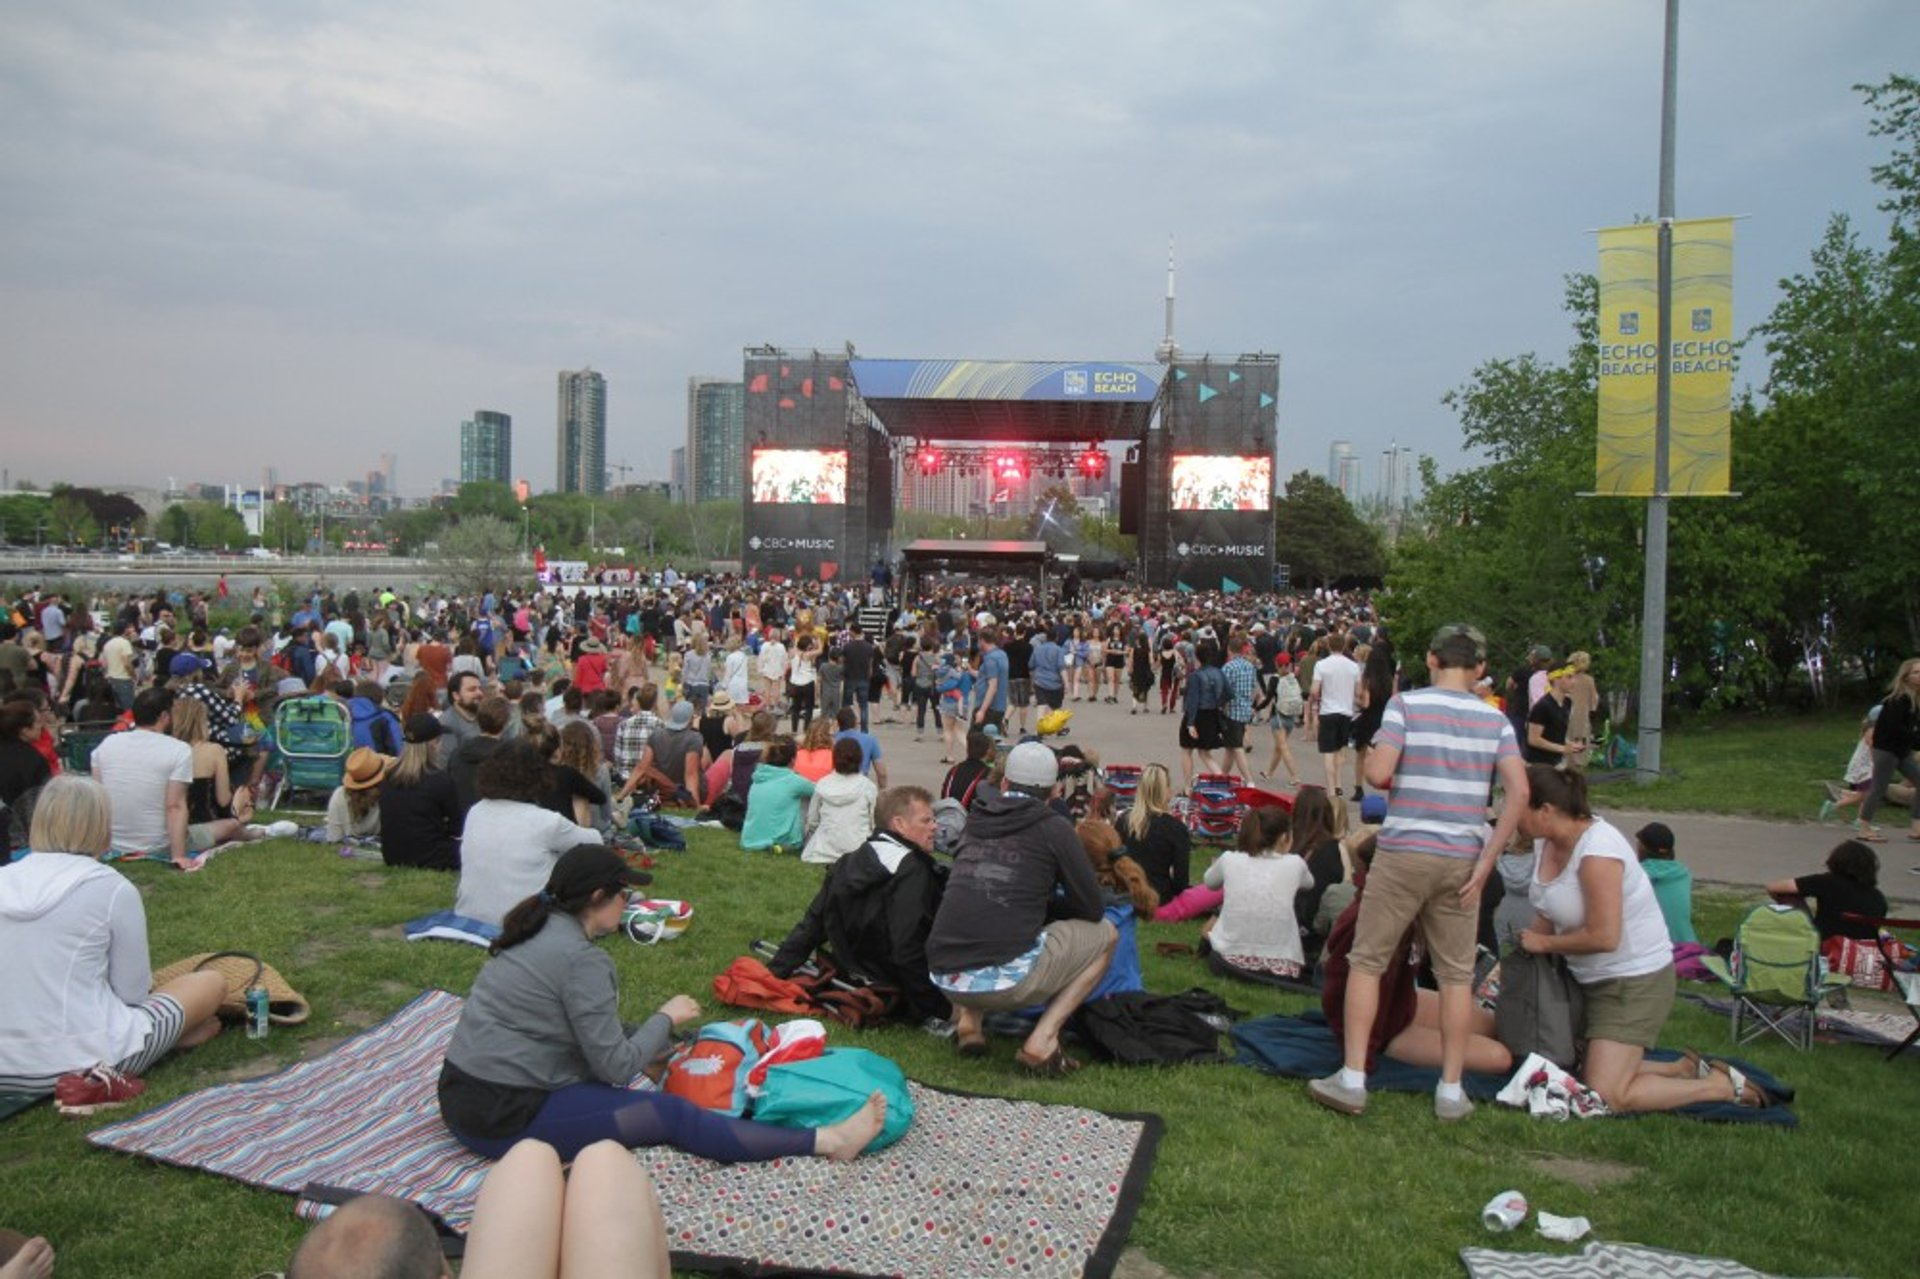 CBC Music Festival in Toronto 2019 - Best Time